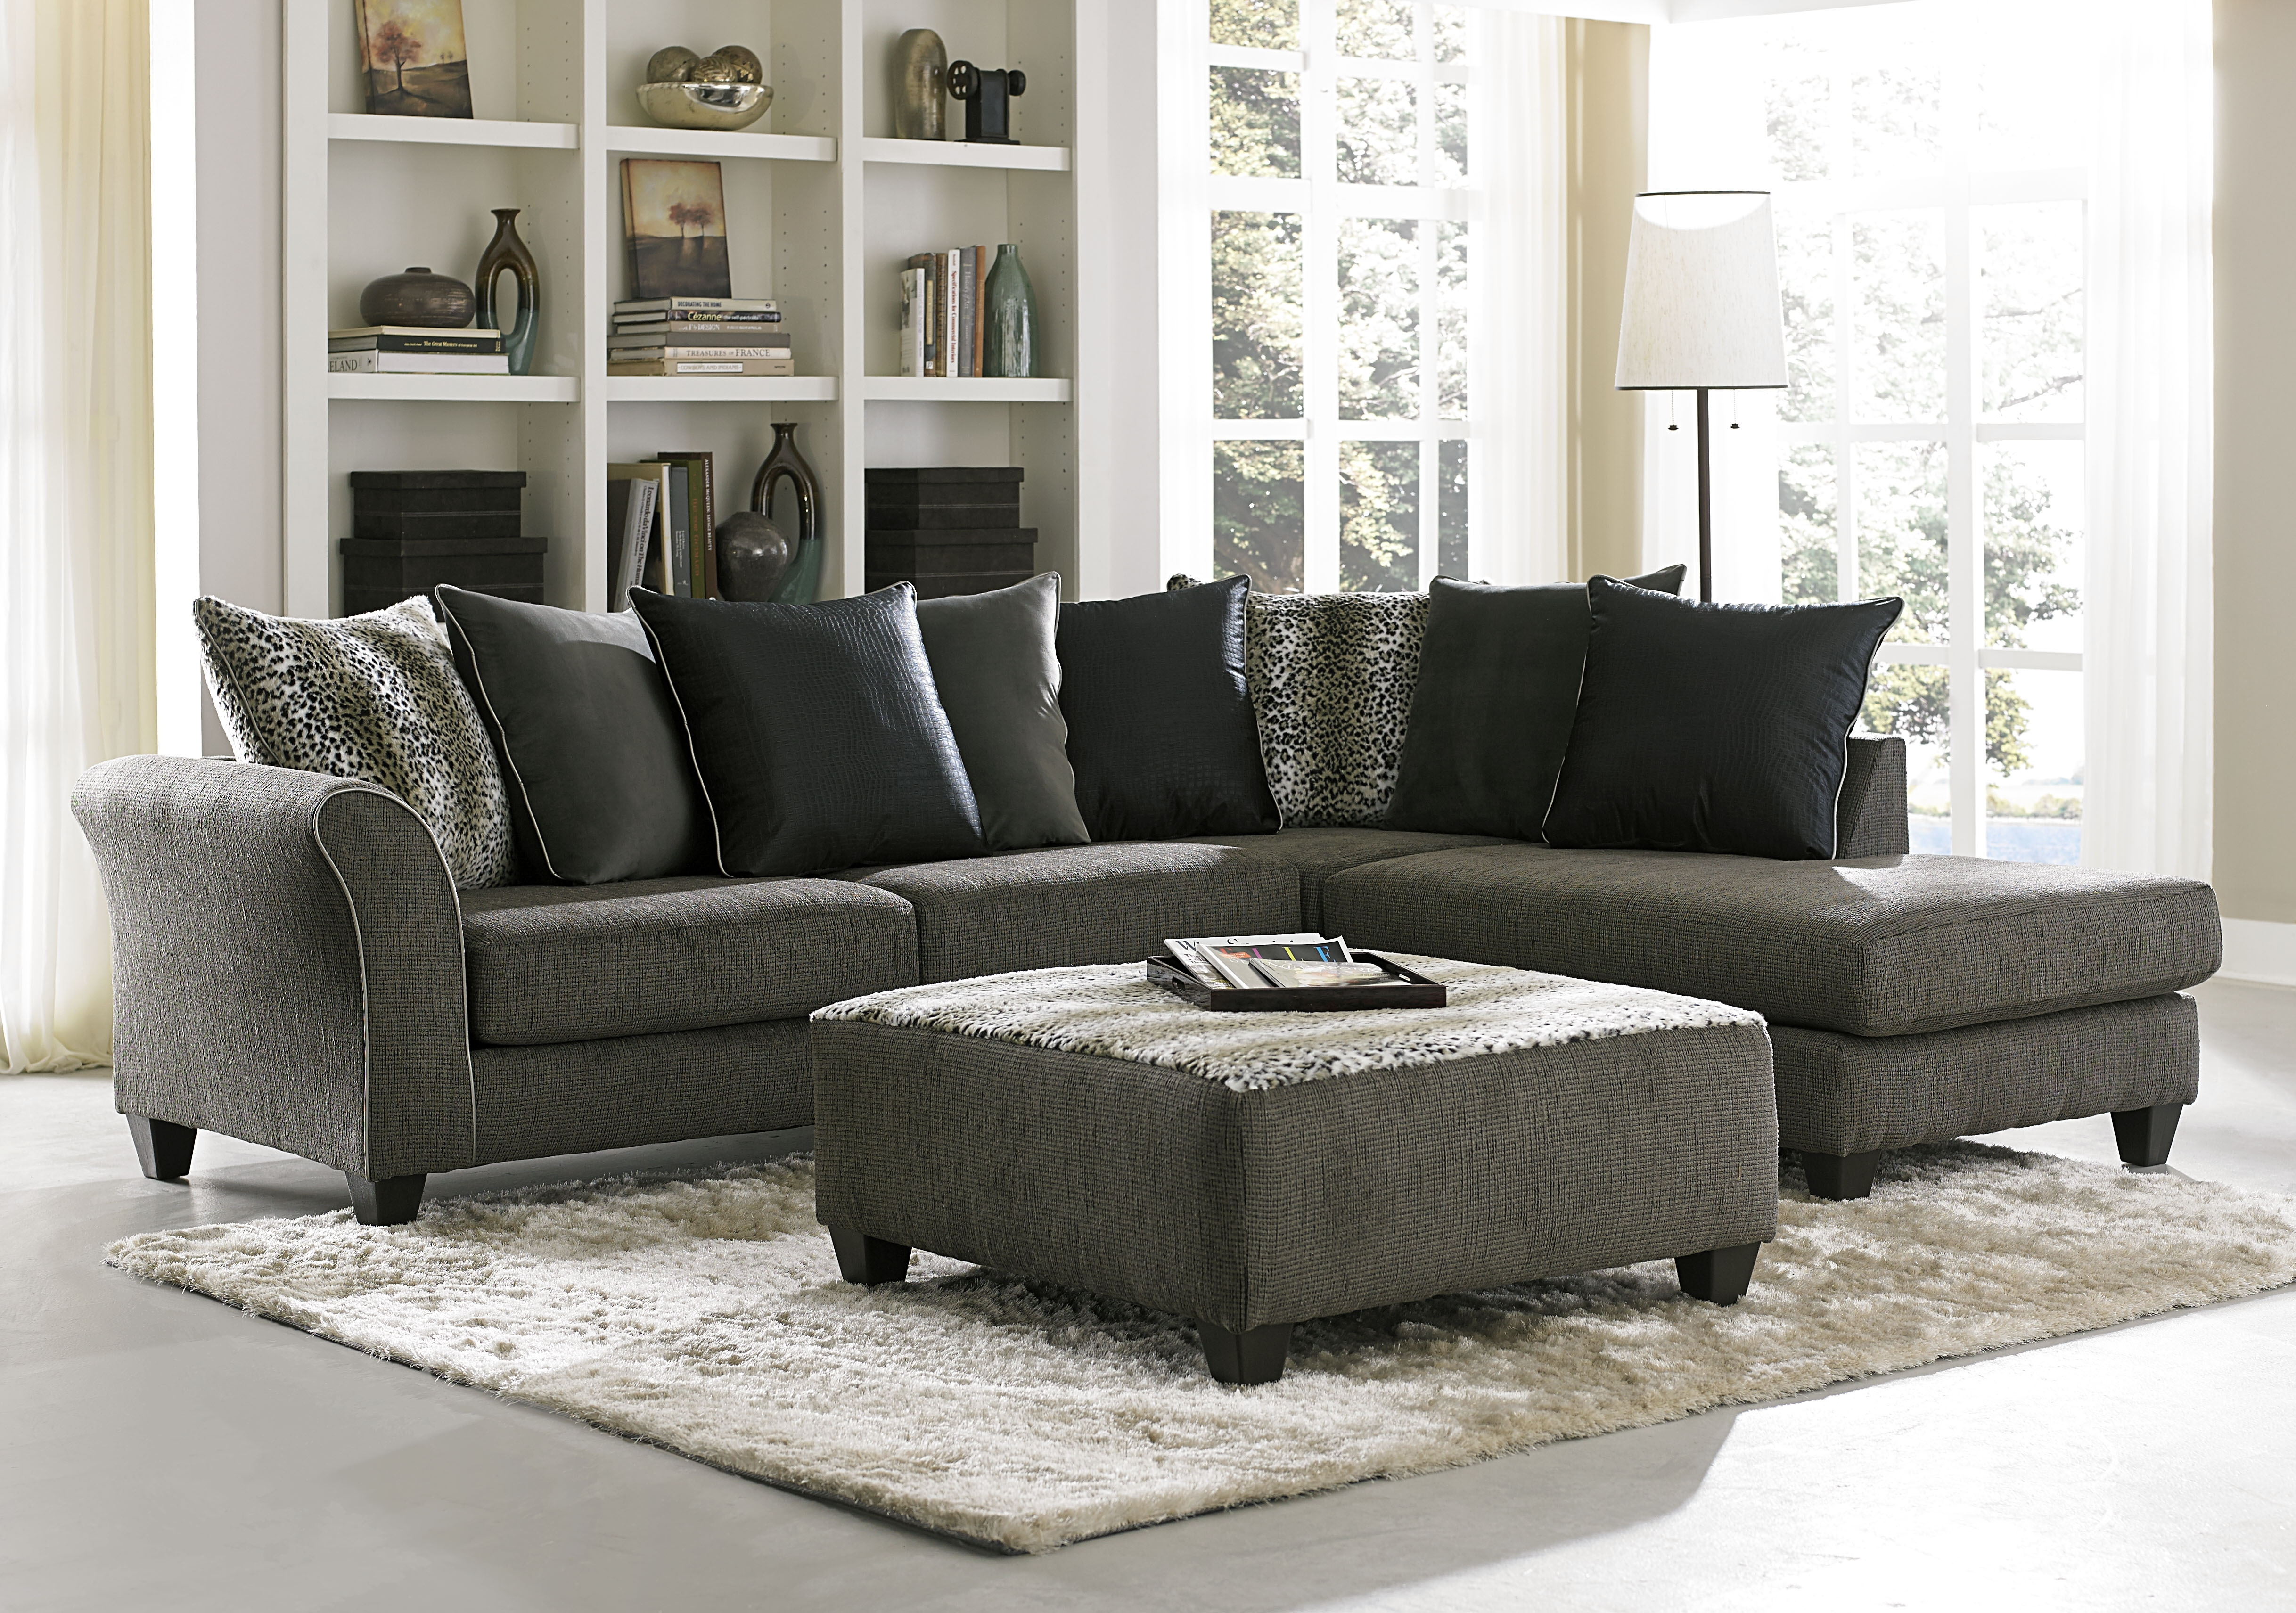 Furniture: American Freight Sectionals For Luxury Living Room Sofas intended for Memphis Tn Sectional Sofas (Image 5 of 10)